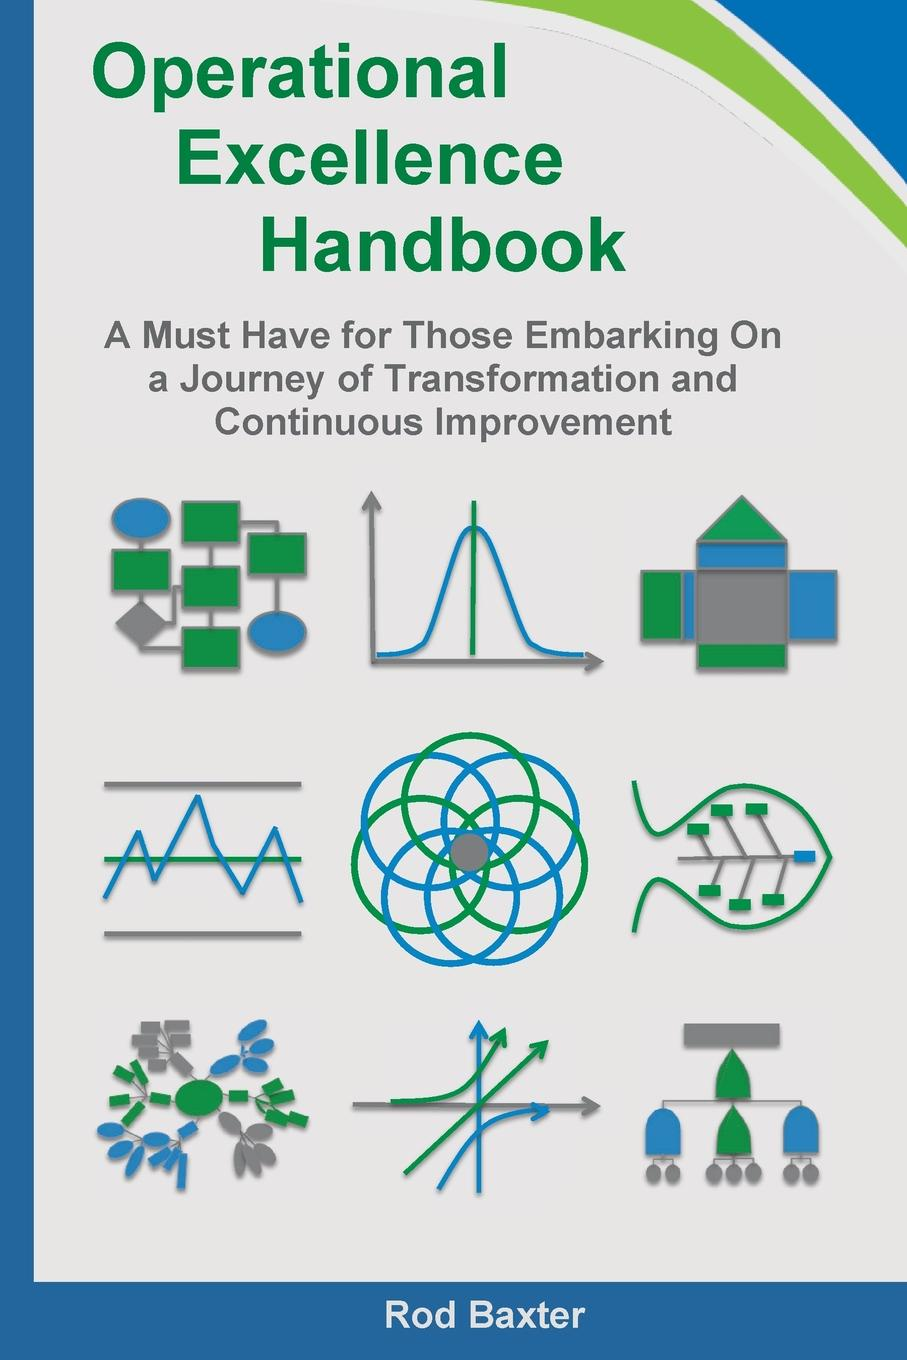 Rod Baxter Operational Excellence Handbook. A Must Have for Those Embarking On a Journey of Transformation and Continuous Improvement susanne charlesworth m sustainable surface water management a handbook for suds